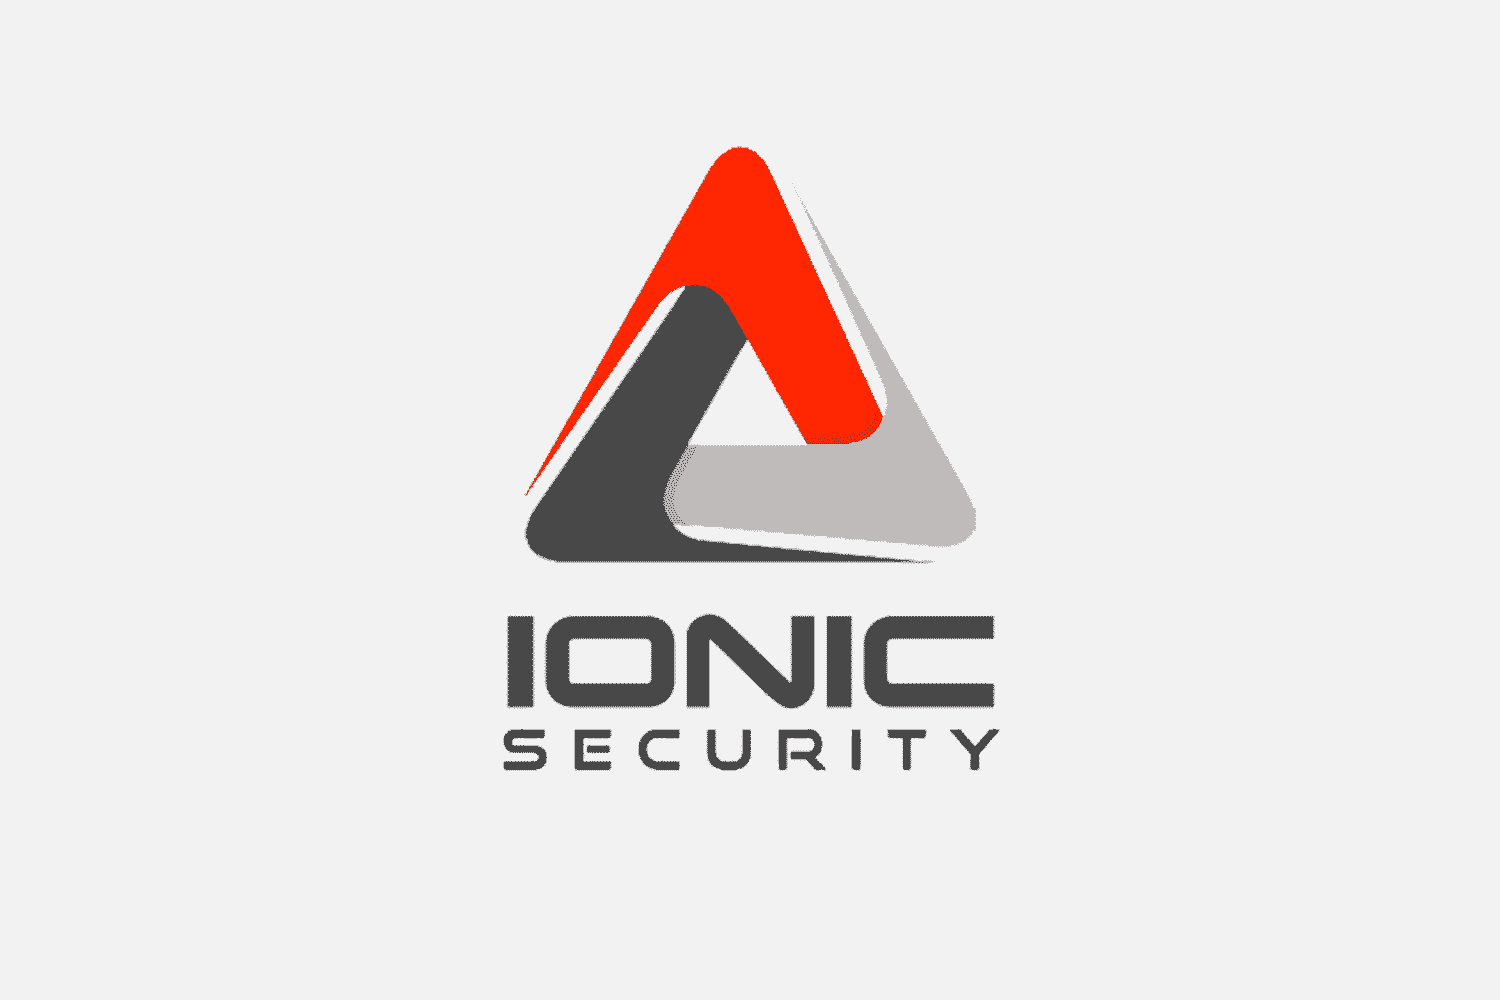 Image for article Ionic Security raises $40 million to encrypt files accessed on the cloud